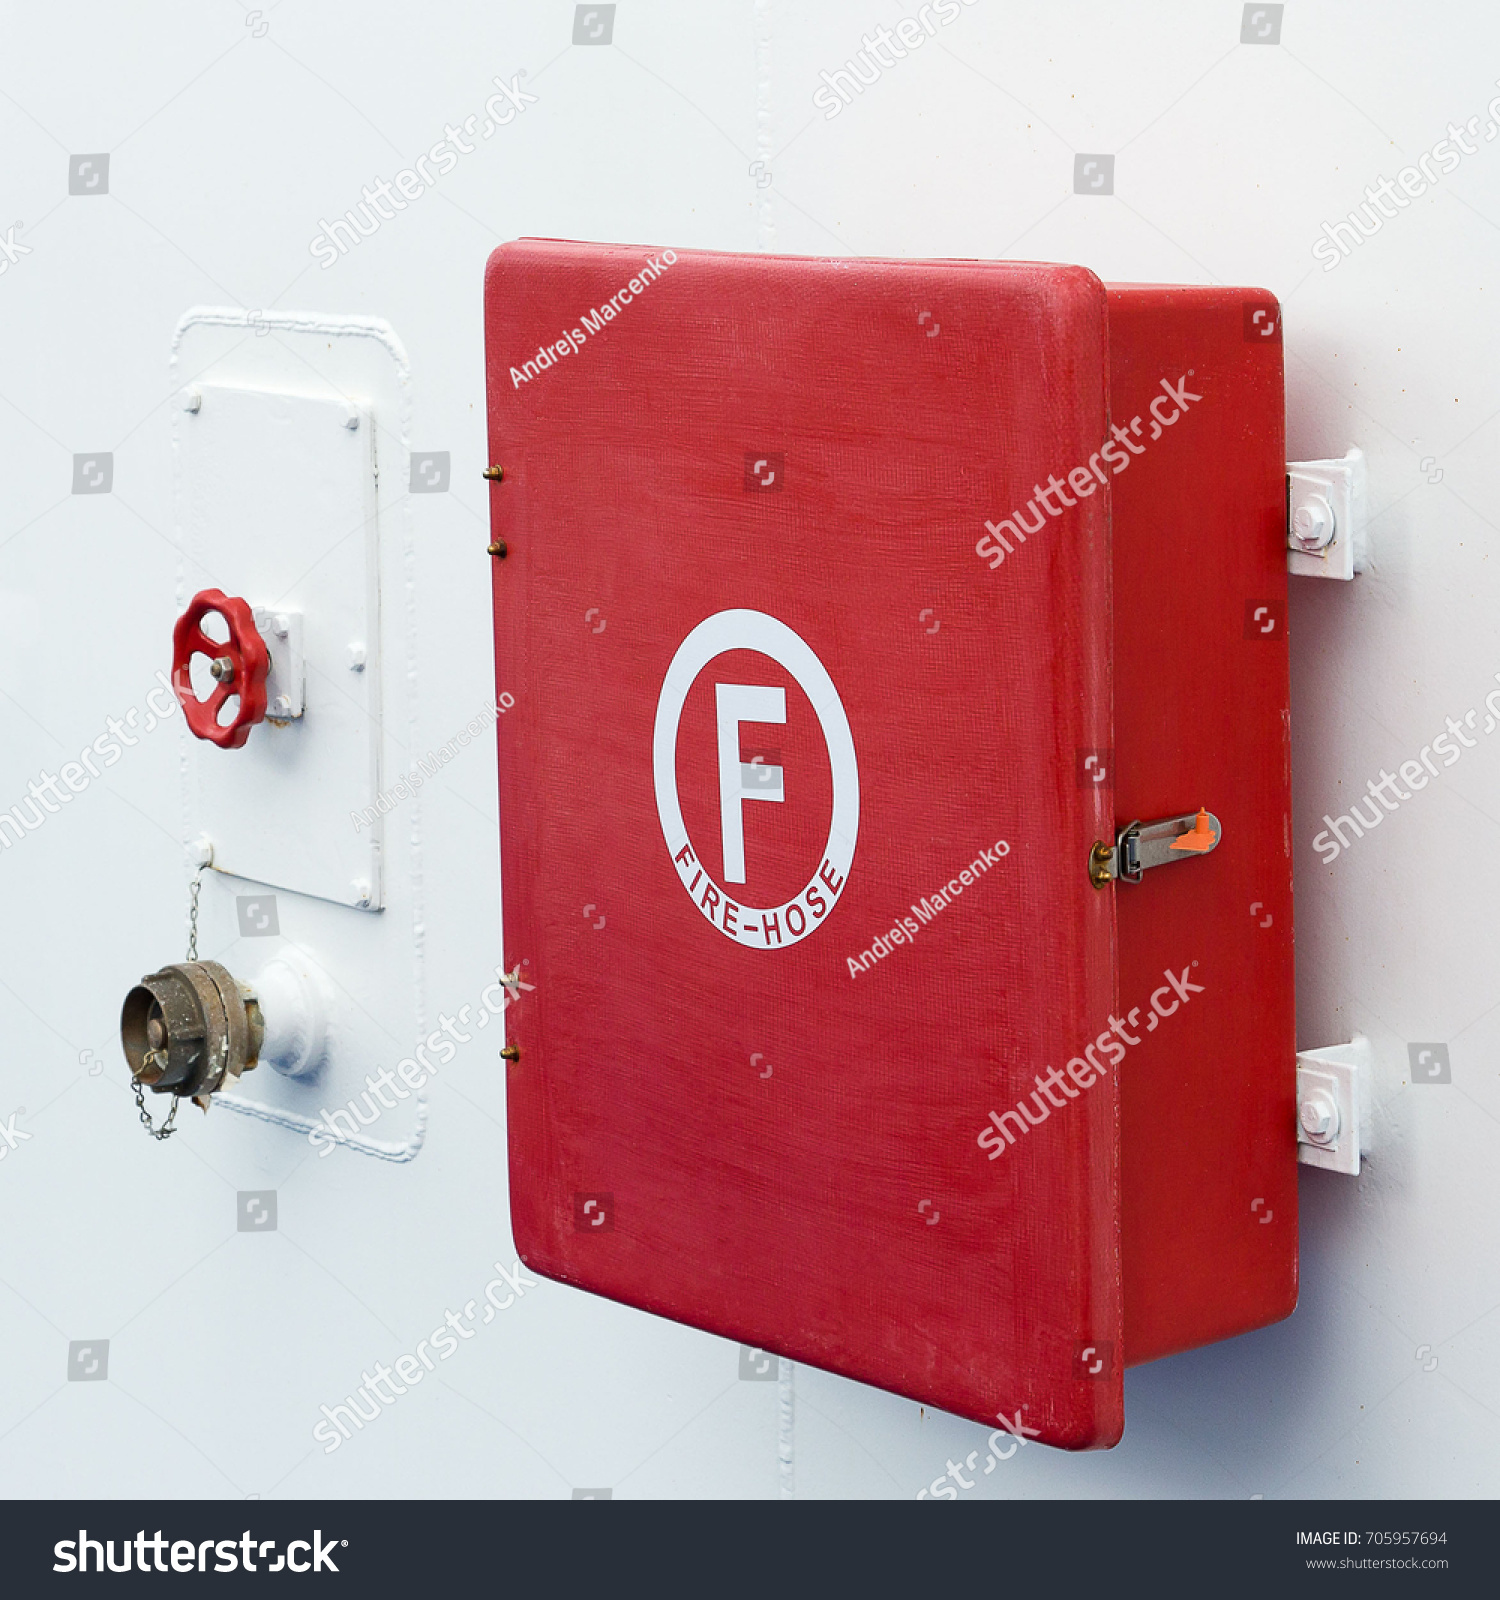 Red Box Storage Fire Hose On Stock Photo 705957694 - Shutterstock